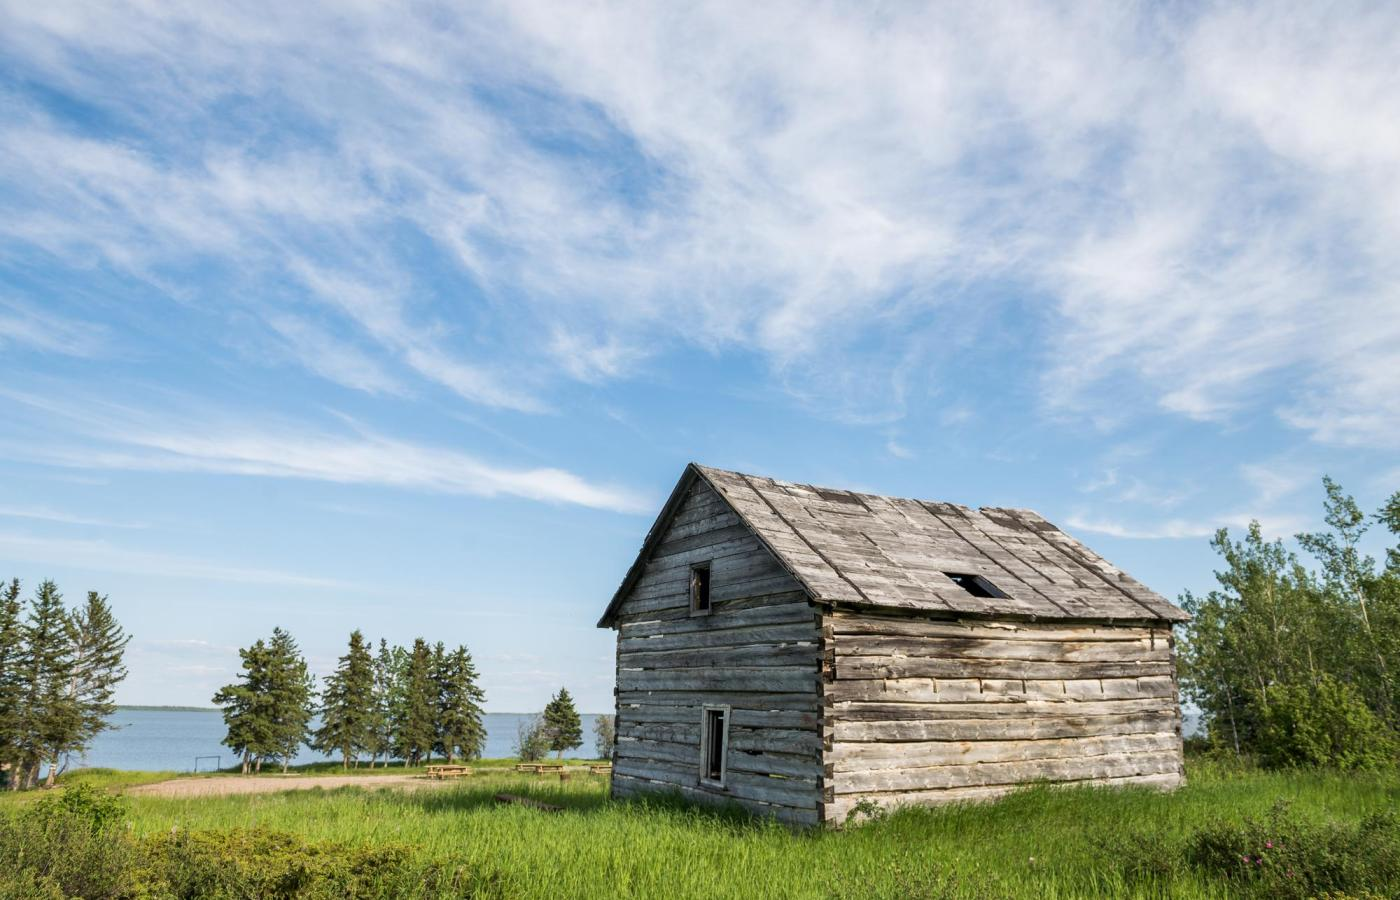 The historic hudson's bay company trading post stands weathered against a blue sky.